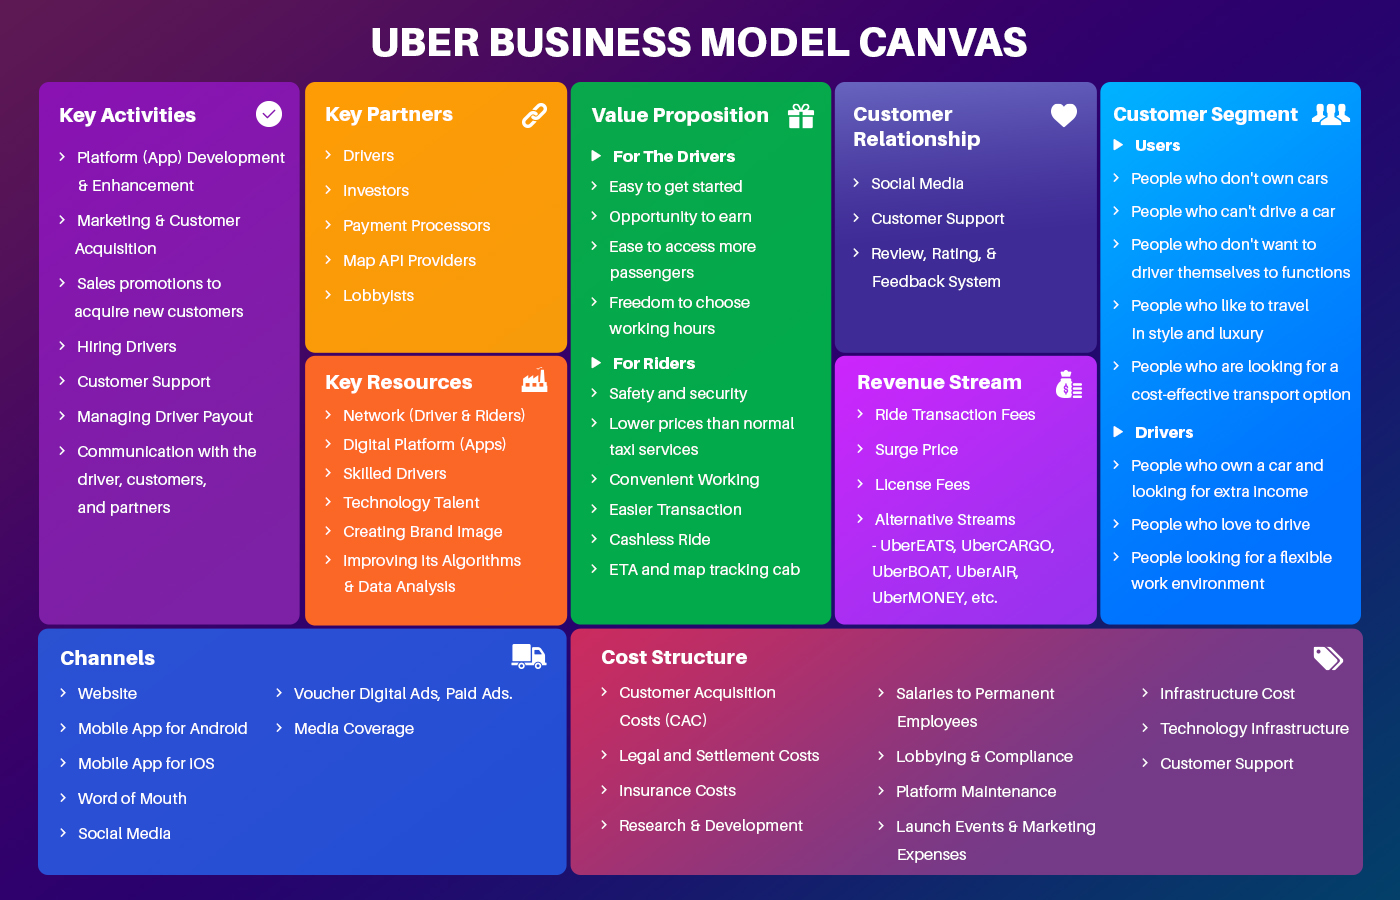 Business Model Canvas of Uber Taxi